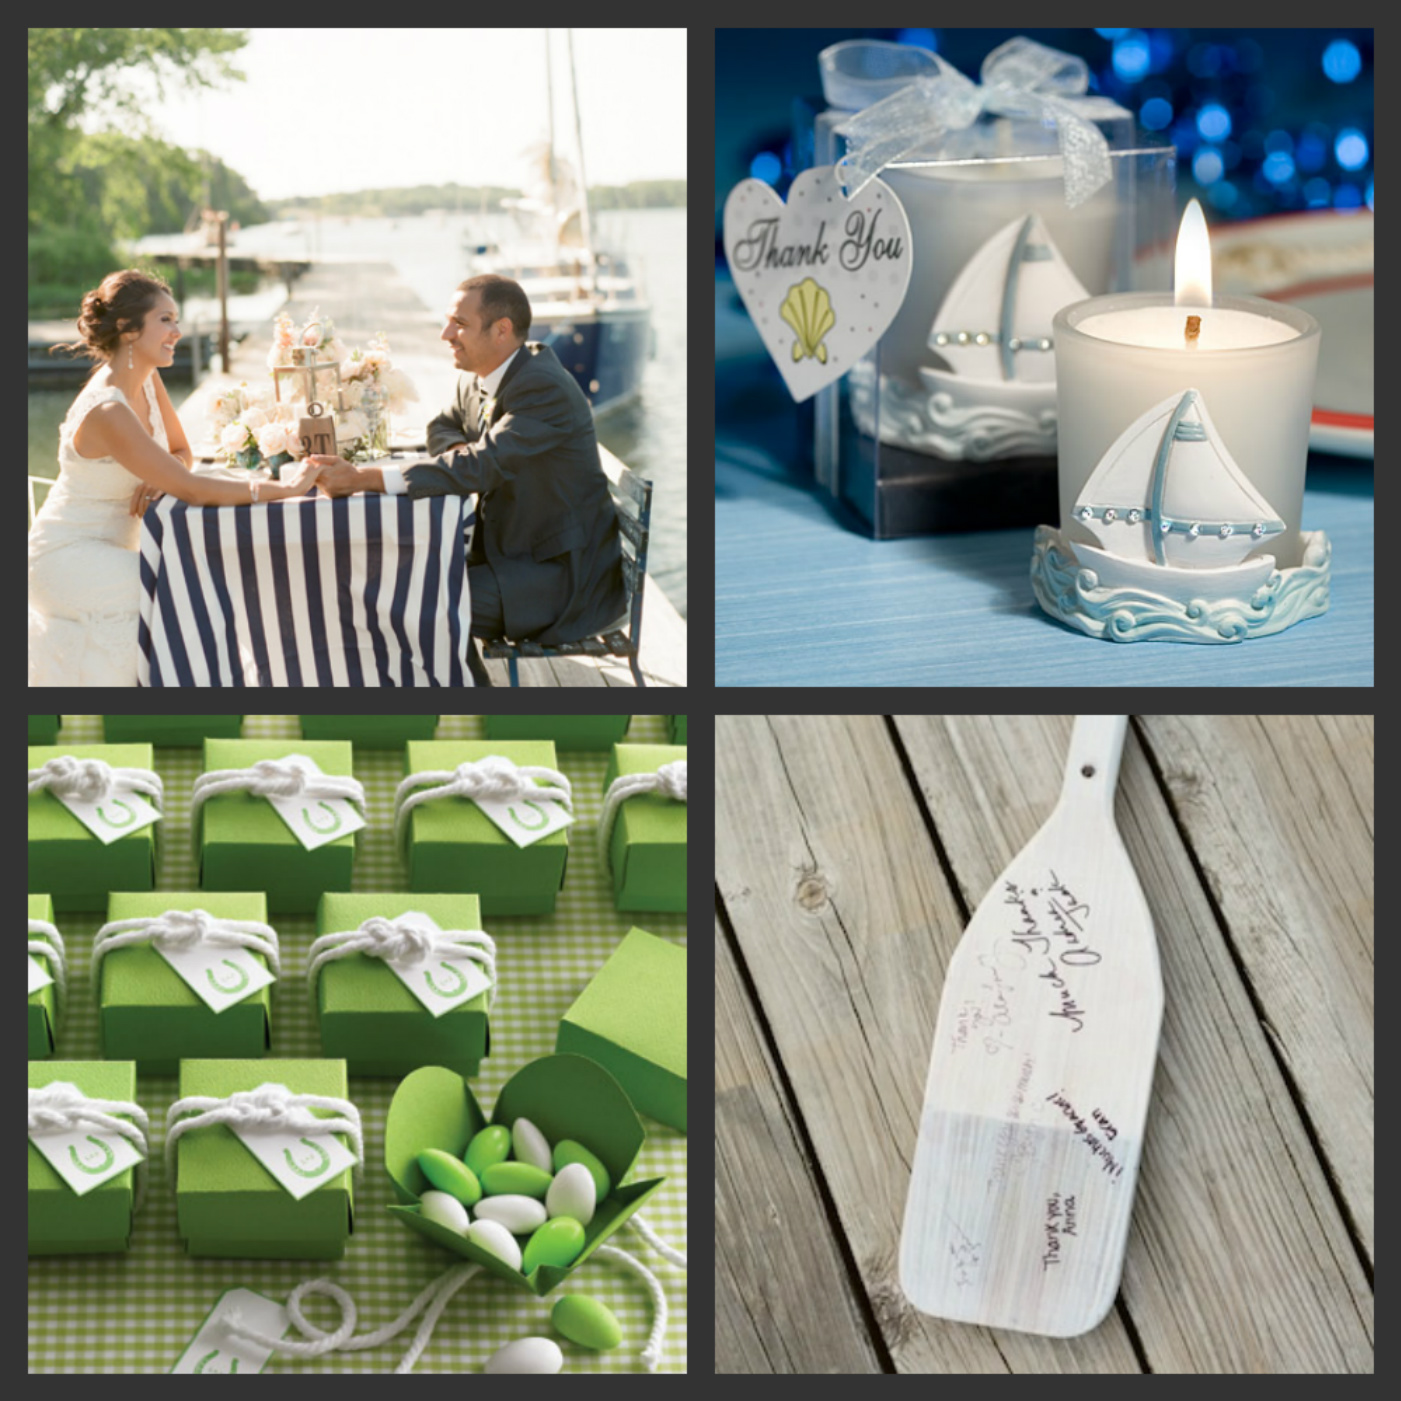 Weddings Are Fun Blog: Have a Nautical Themed Wedding